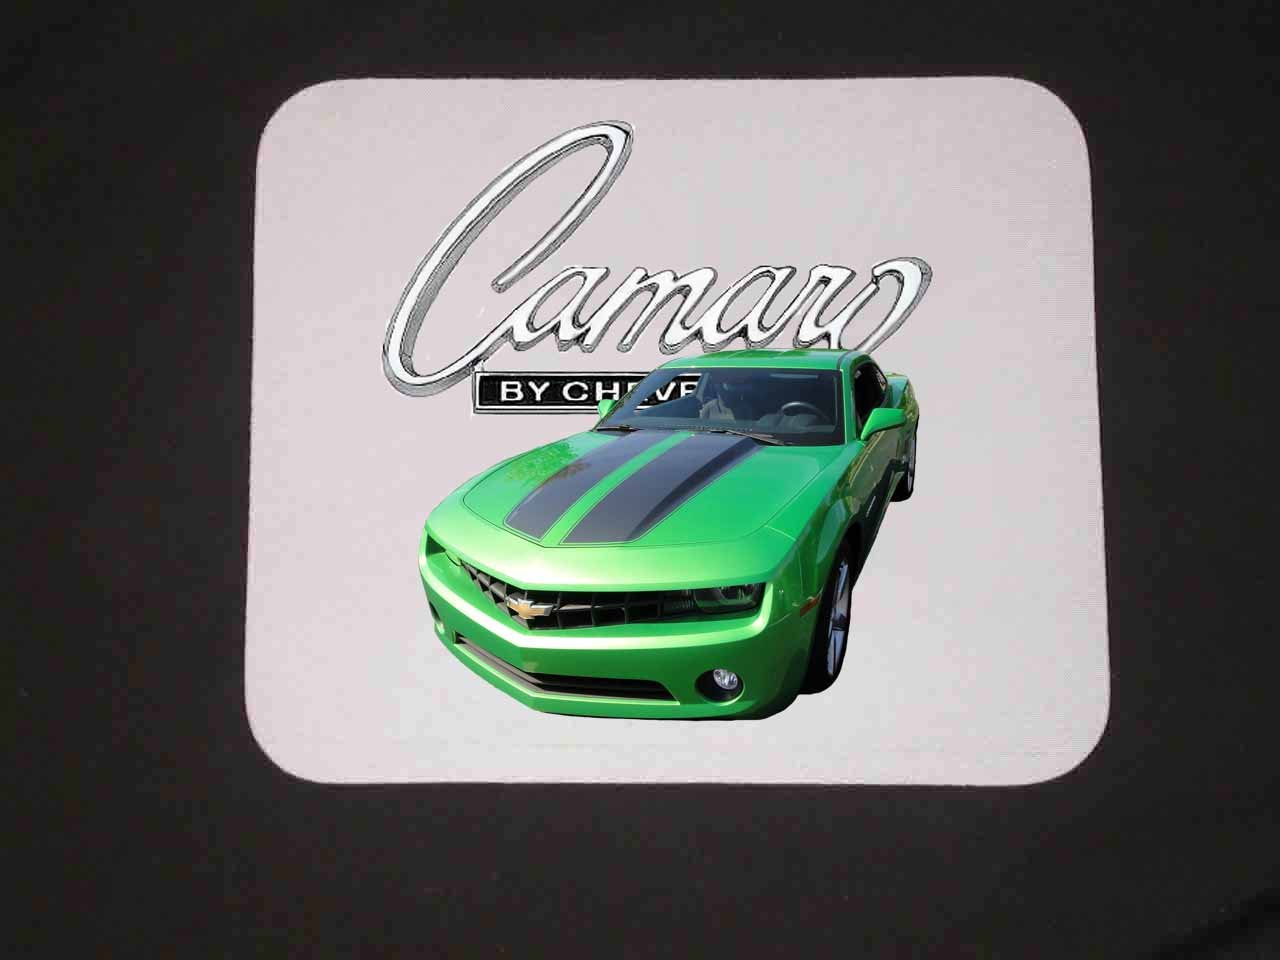 New 2010 Synergy Green Chevy Camaro Mousepad